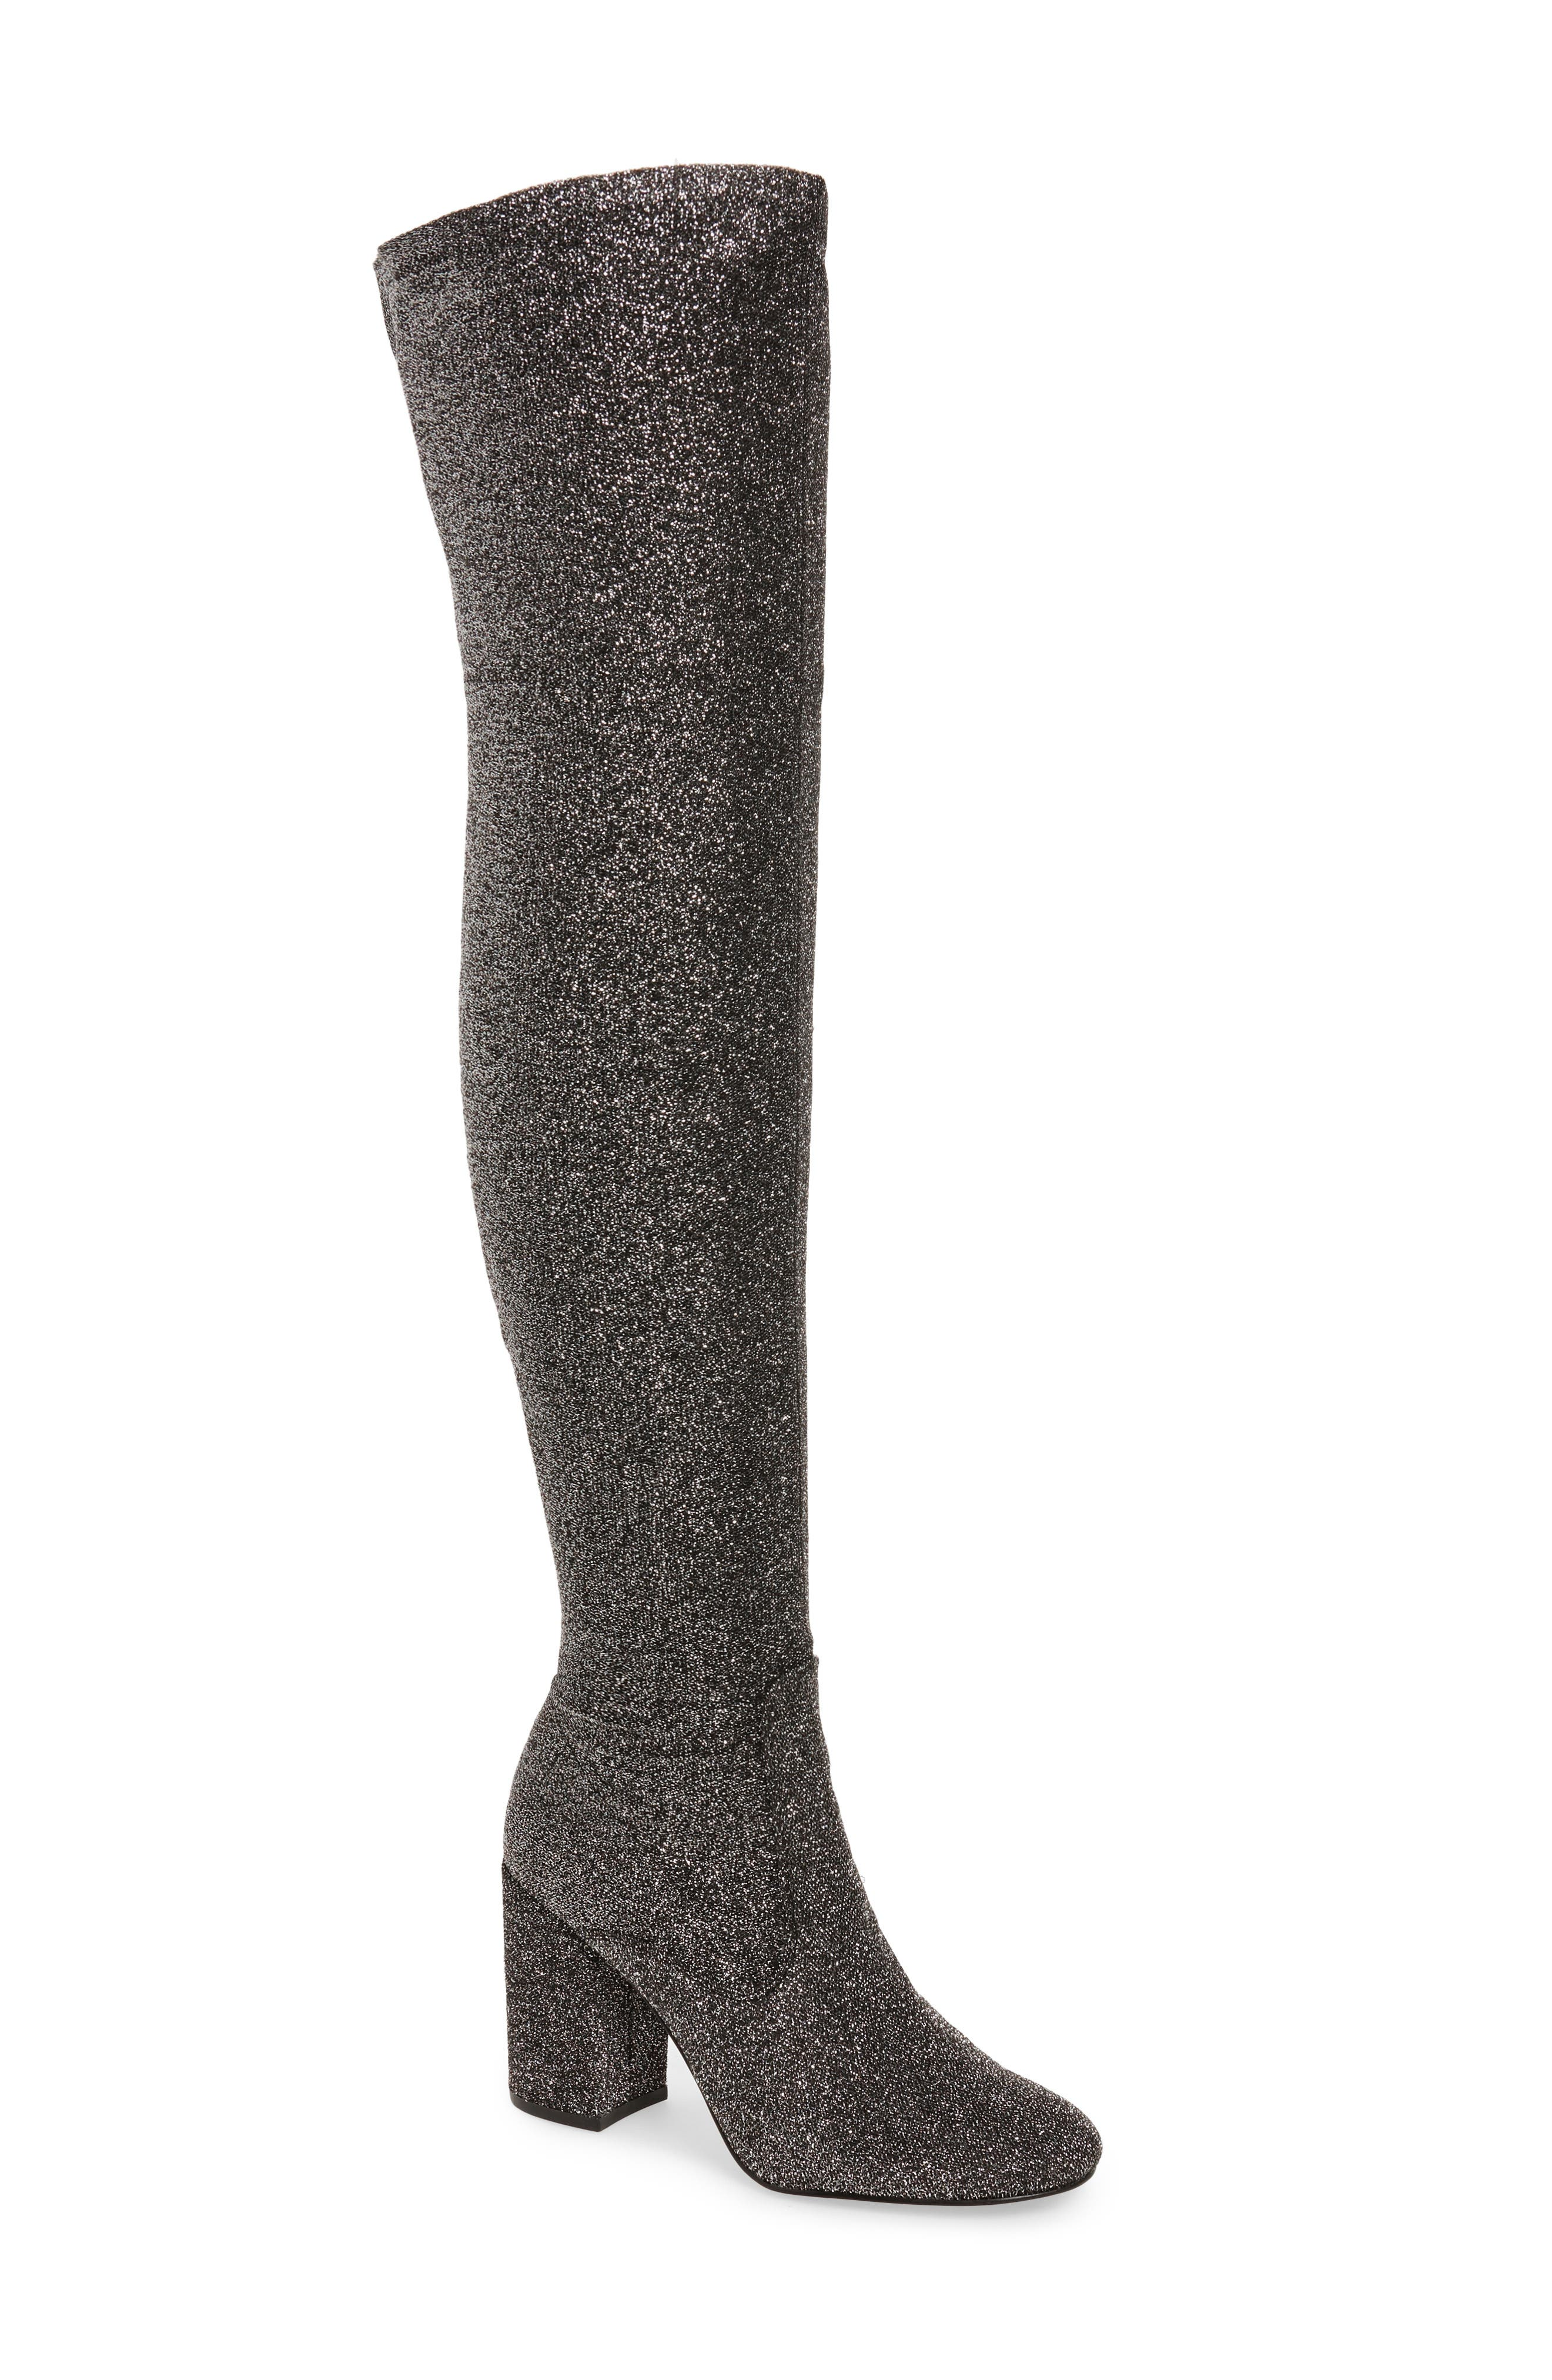 Carah Over the Knee Boot,                             Main thumbnail 1, color,                             024